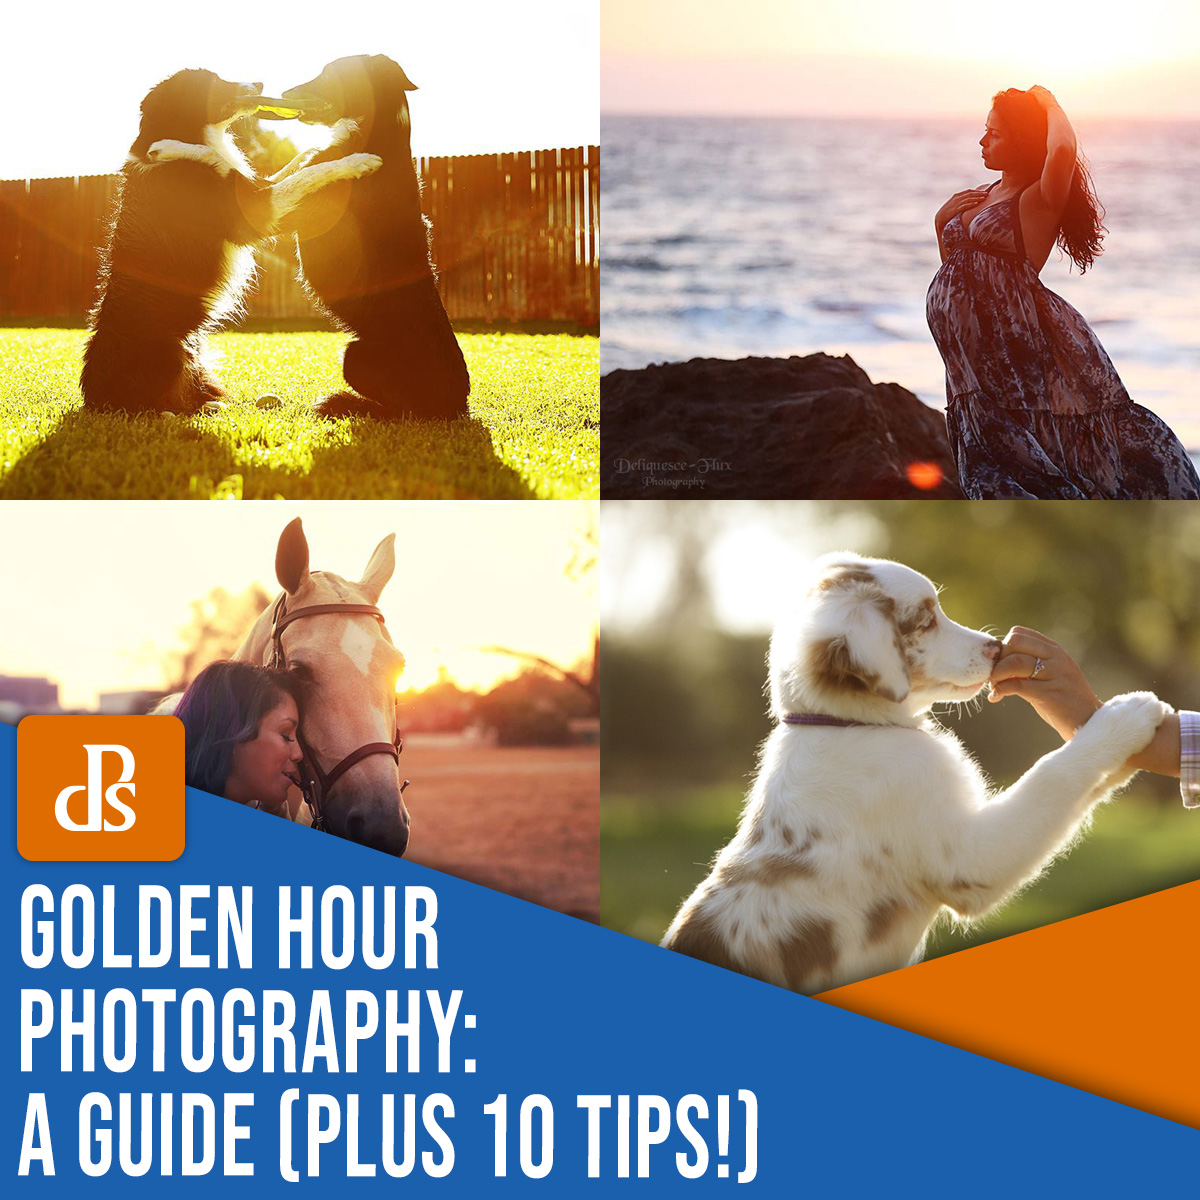 golden hour photography: a guide plus 10 tips